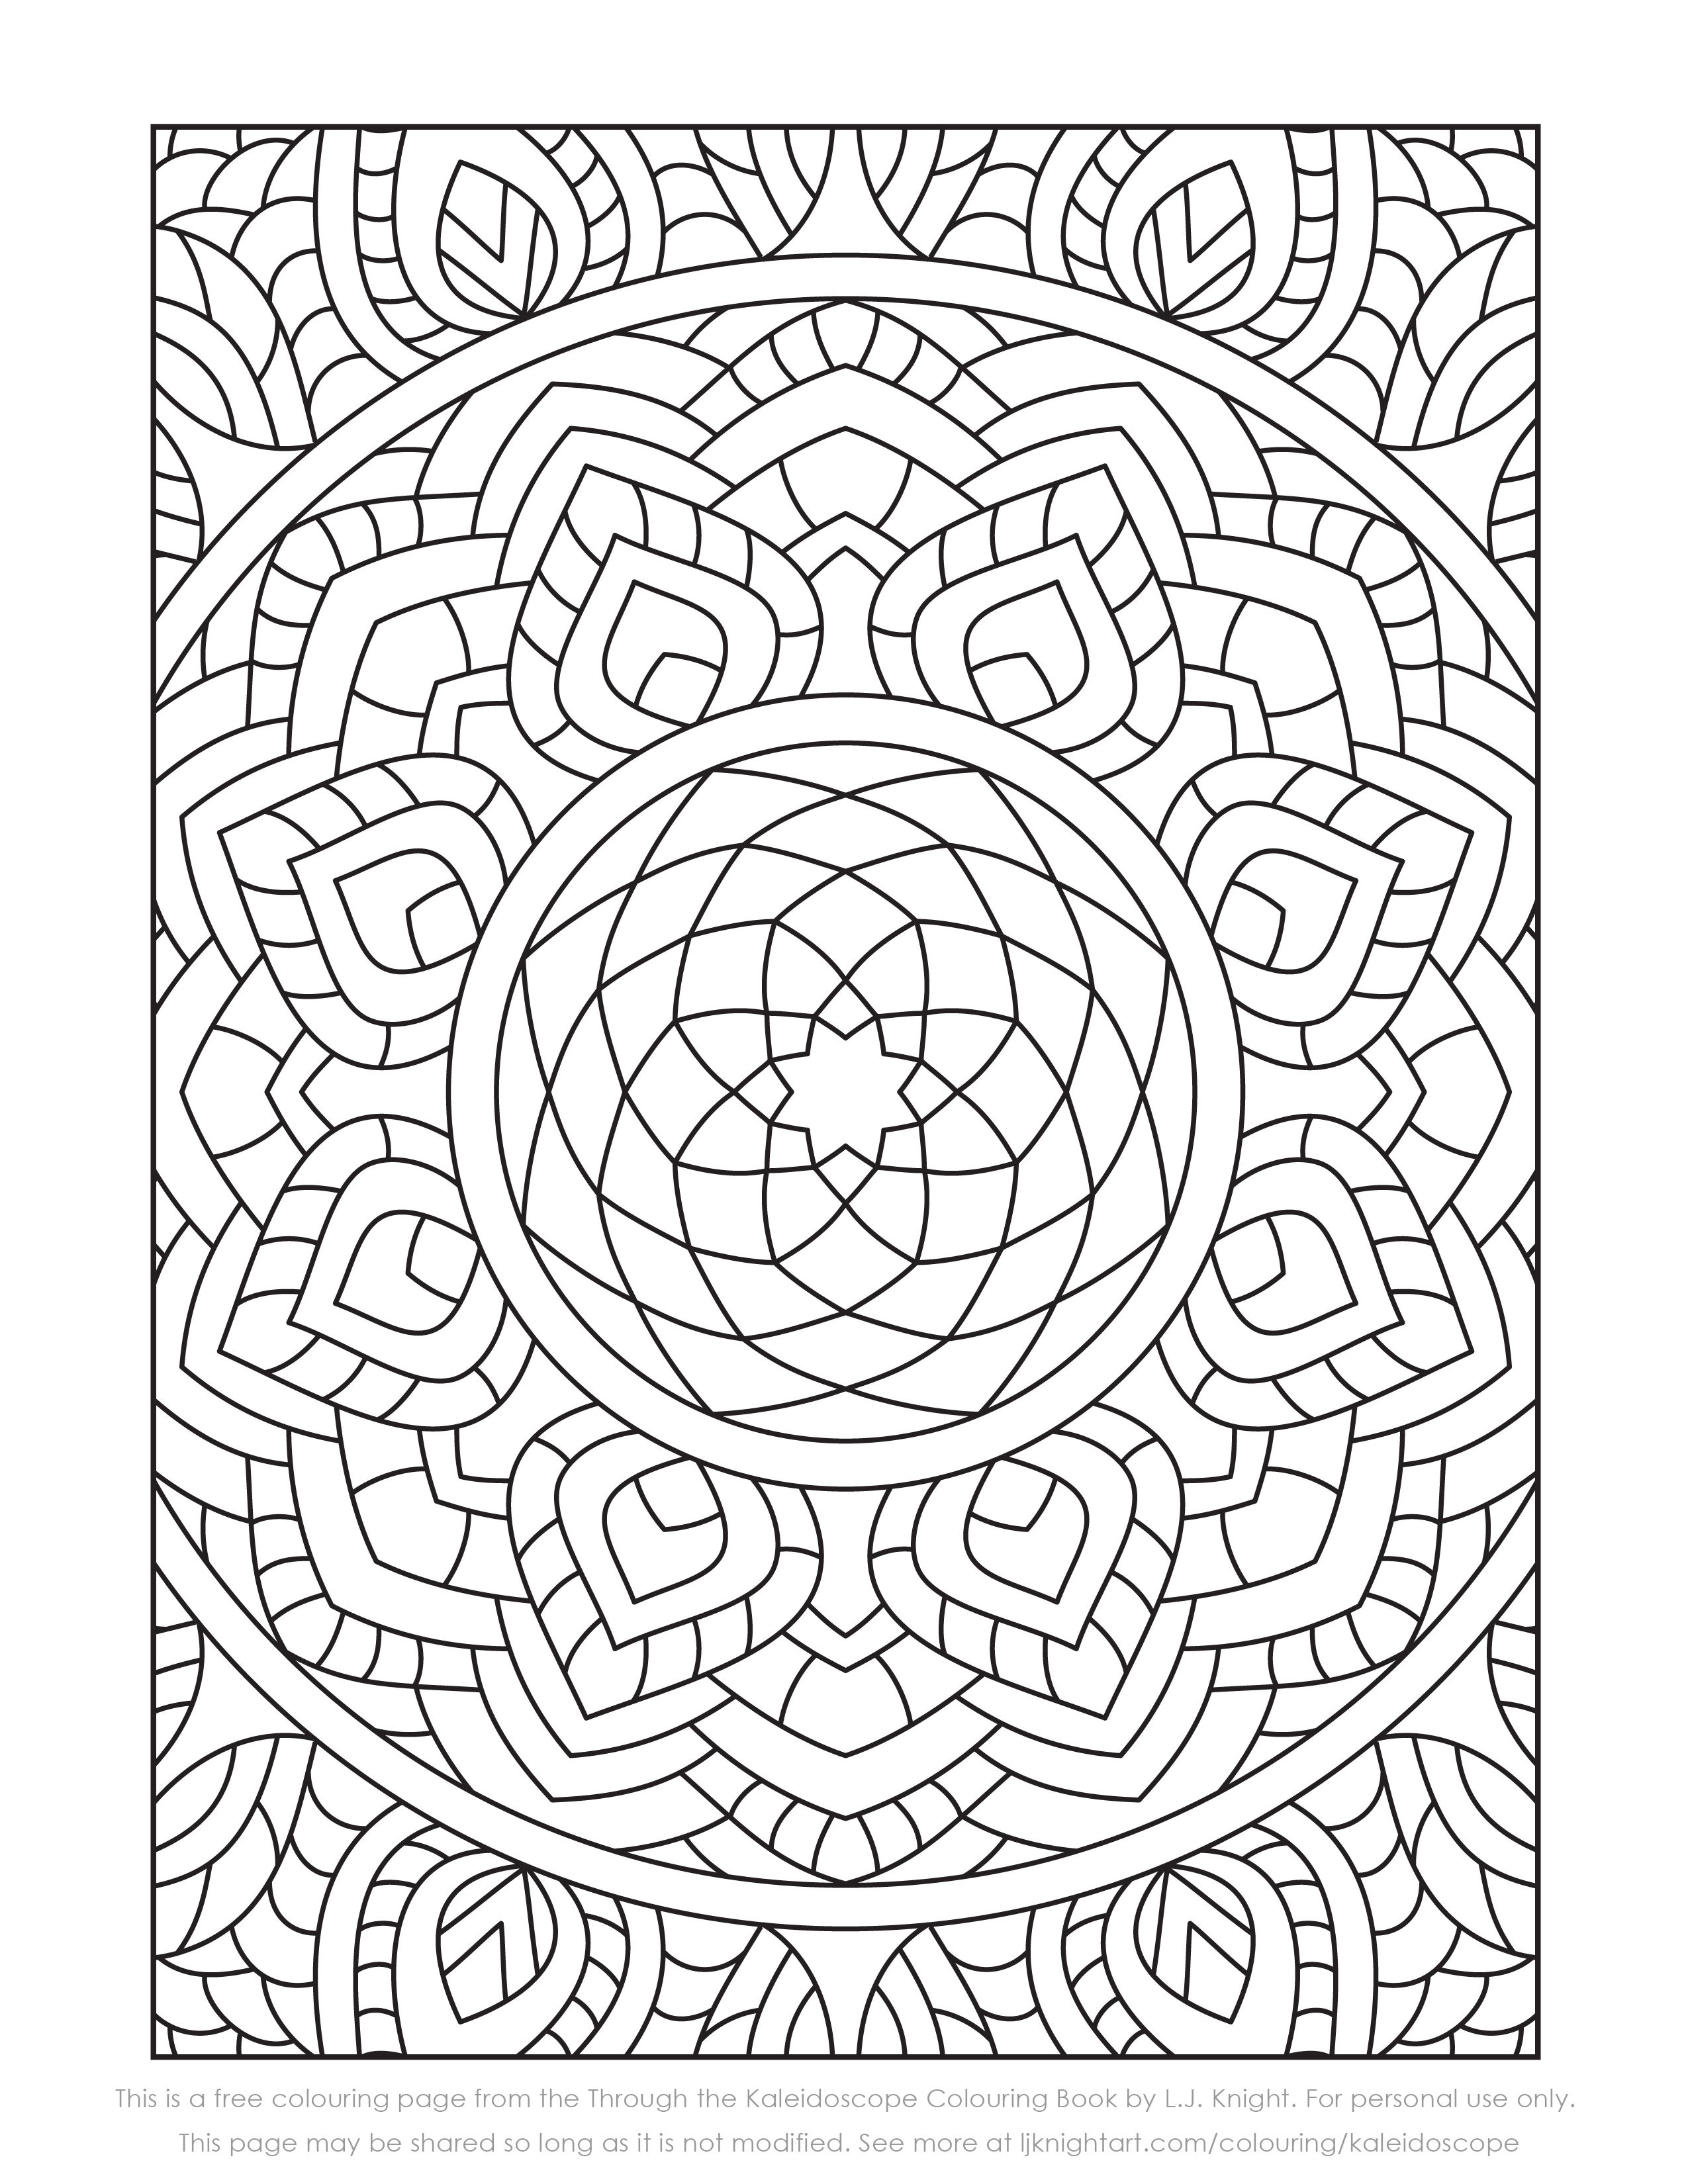 Free Colouring Page From The Through The Kaleidoscope Colouring Book By L J Knight Thi Geometric Coloring Pages Pattern Coloring Pages Mandala Coloring Pages